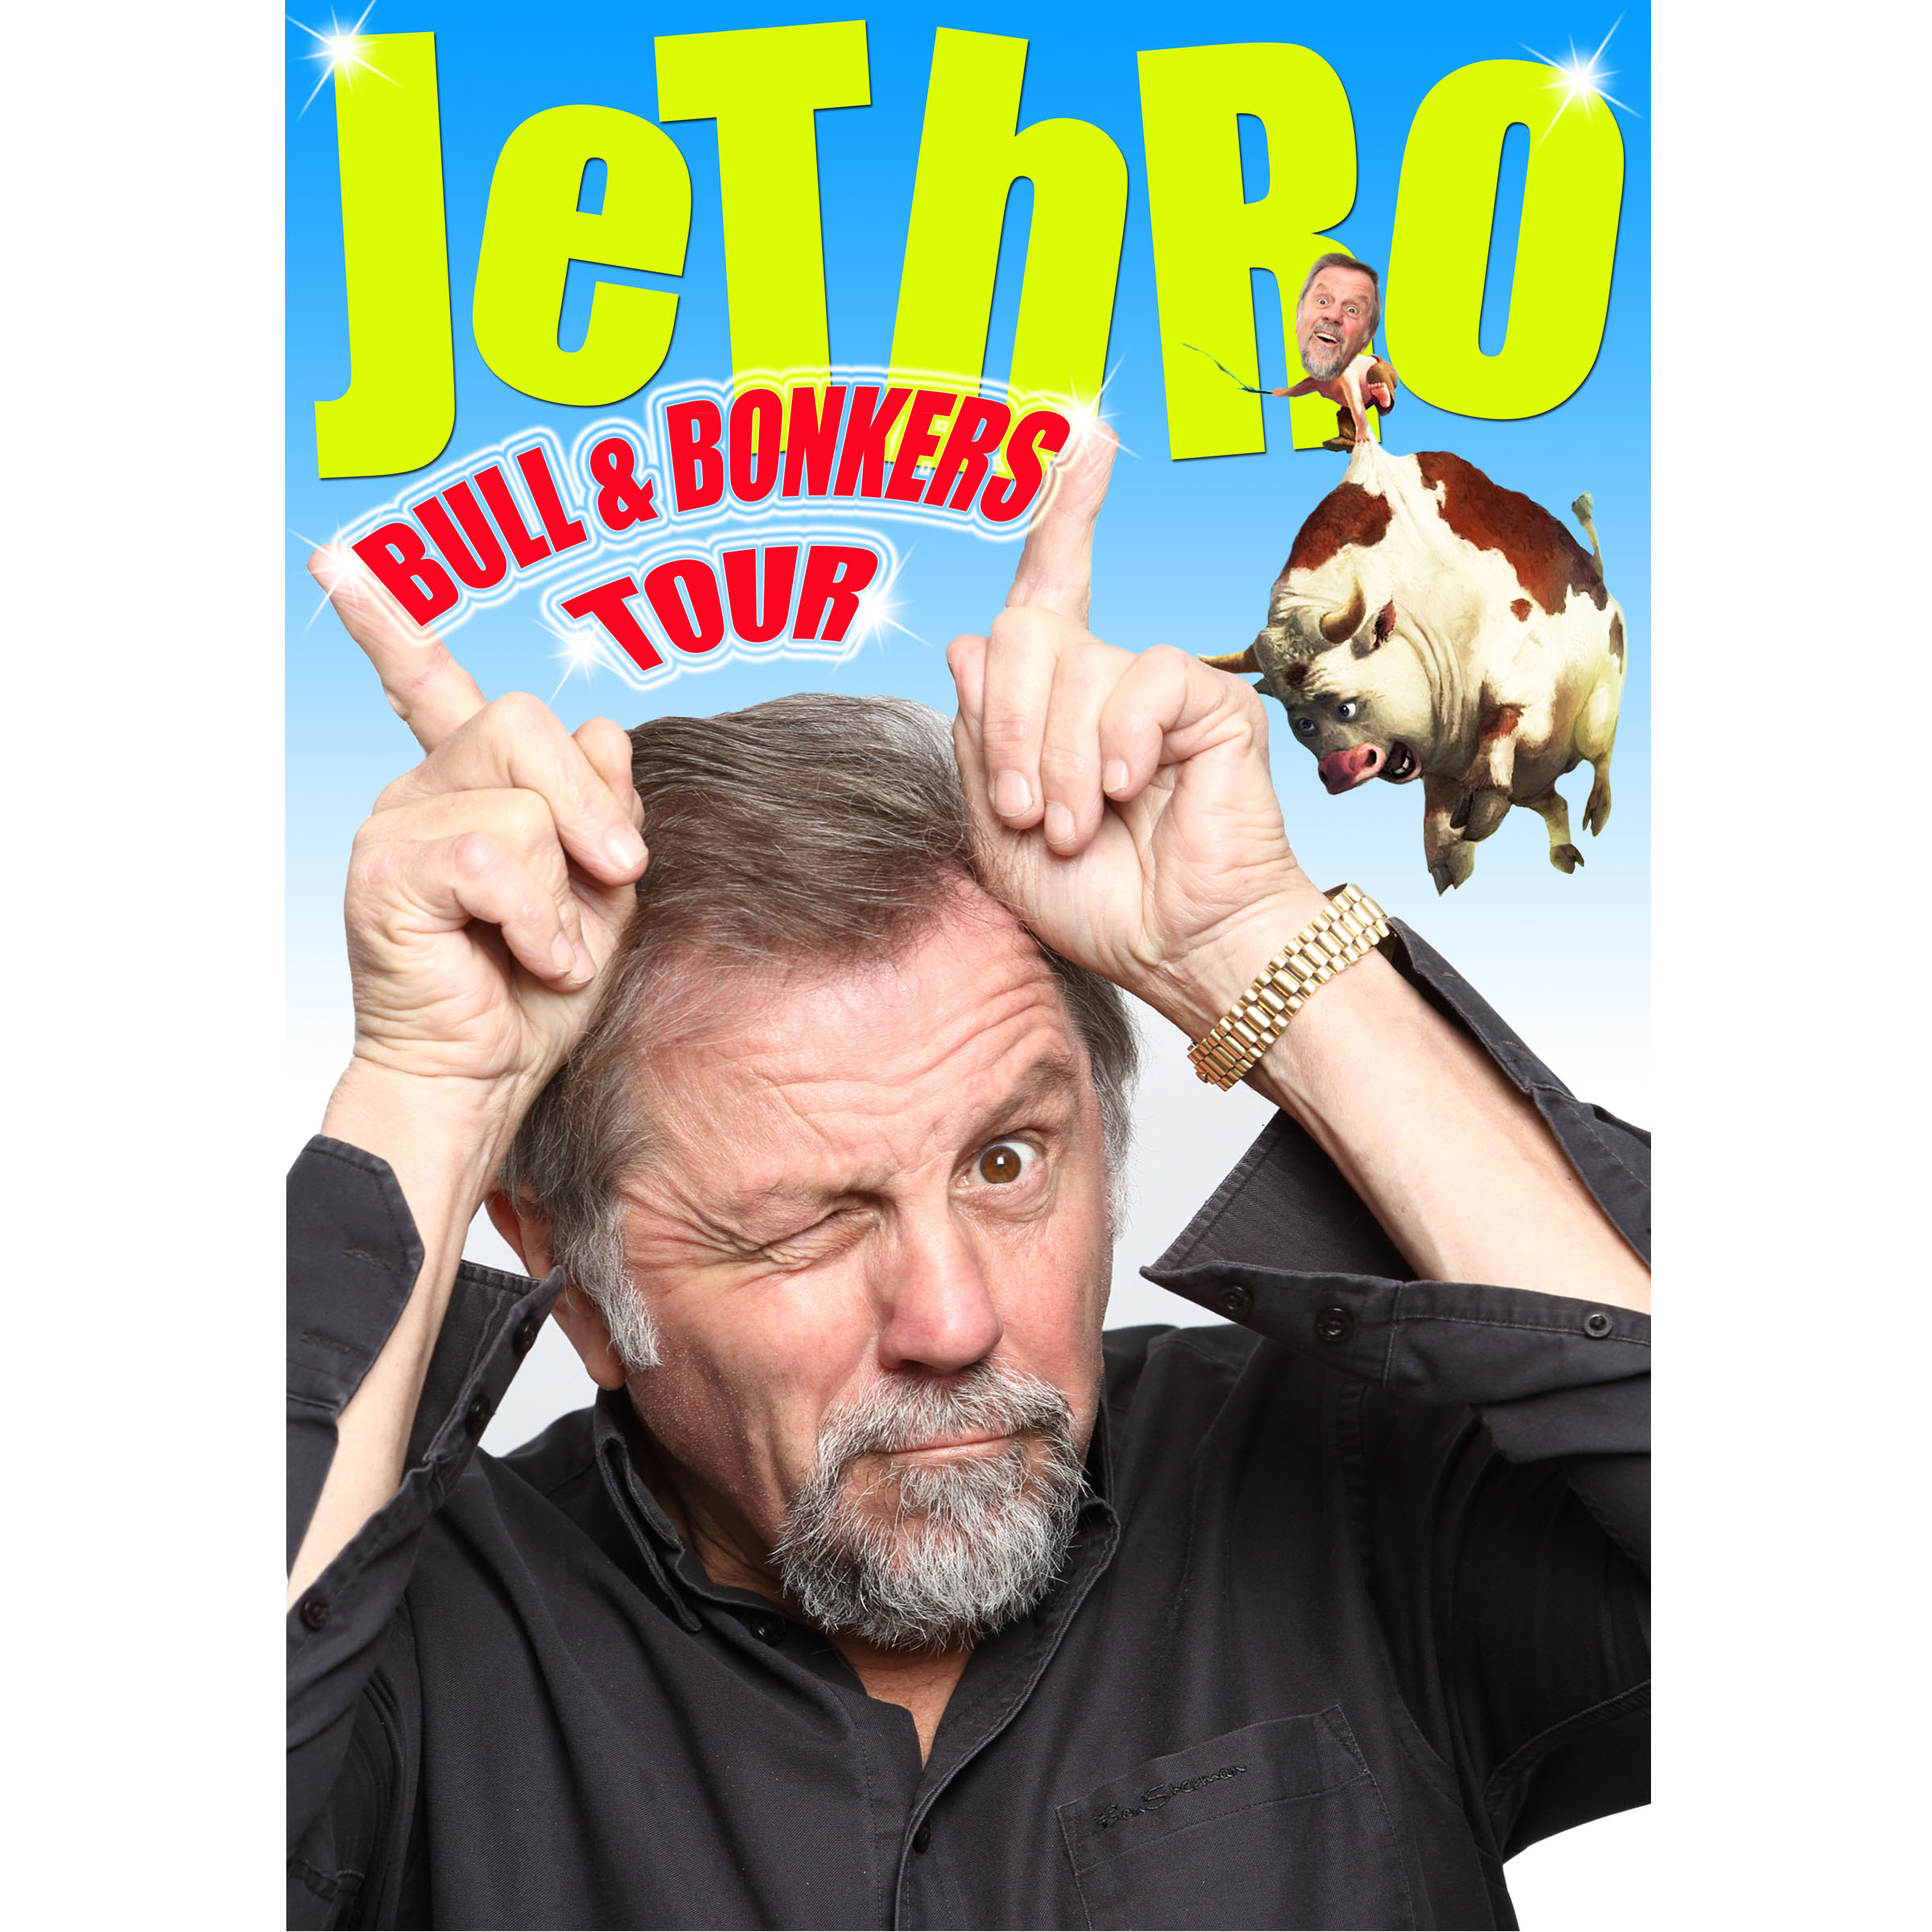 Jethro - The Bull and Bonkers Tour